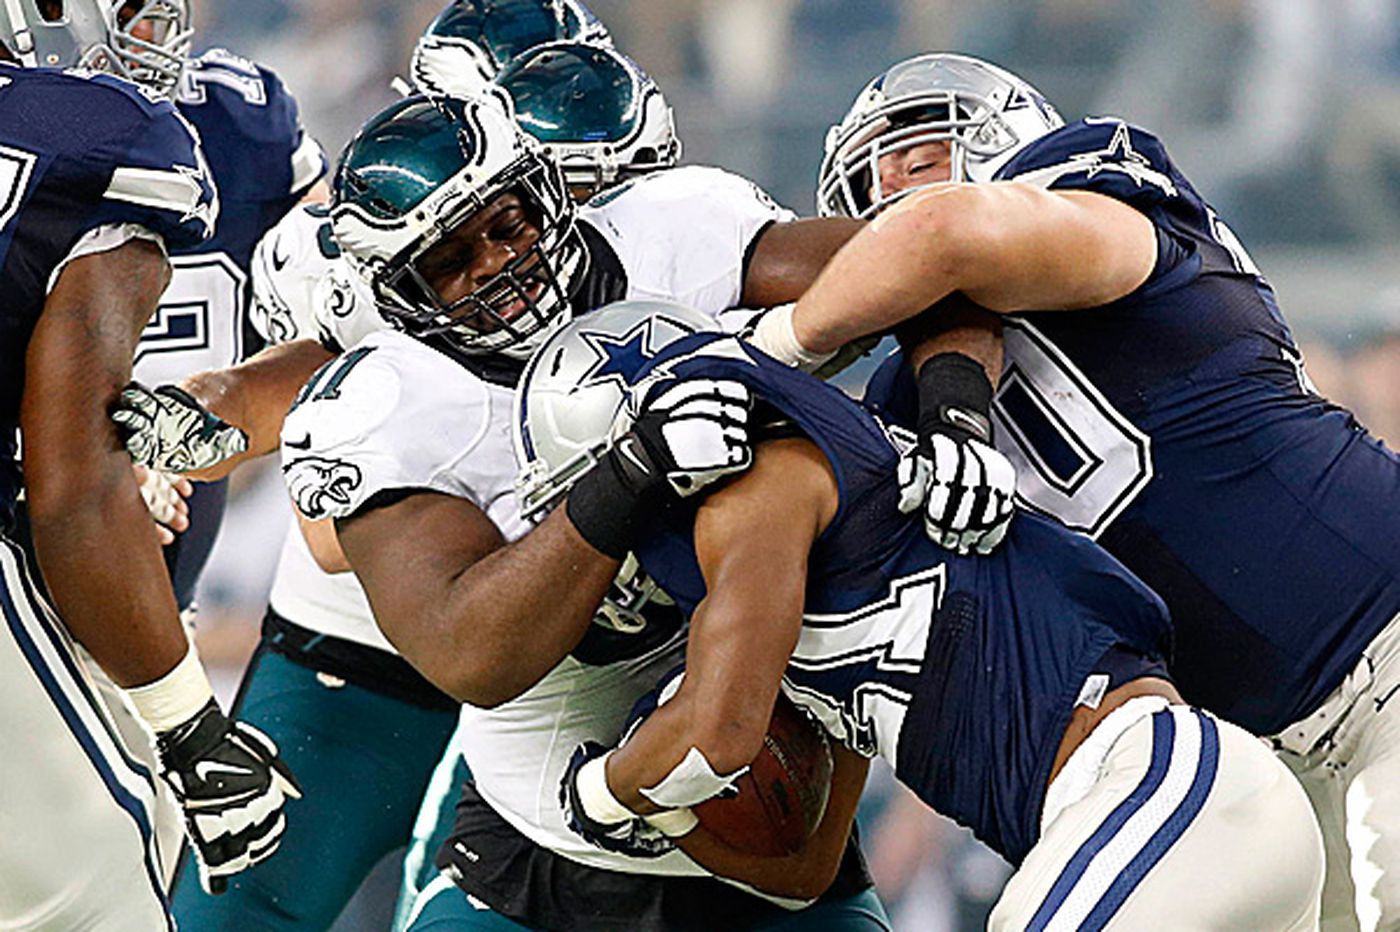 Eagles' Cox is coming into his own as a quality defensive end